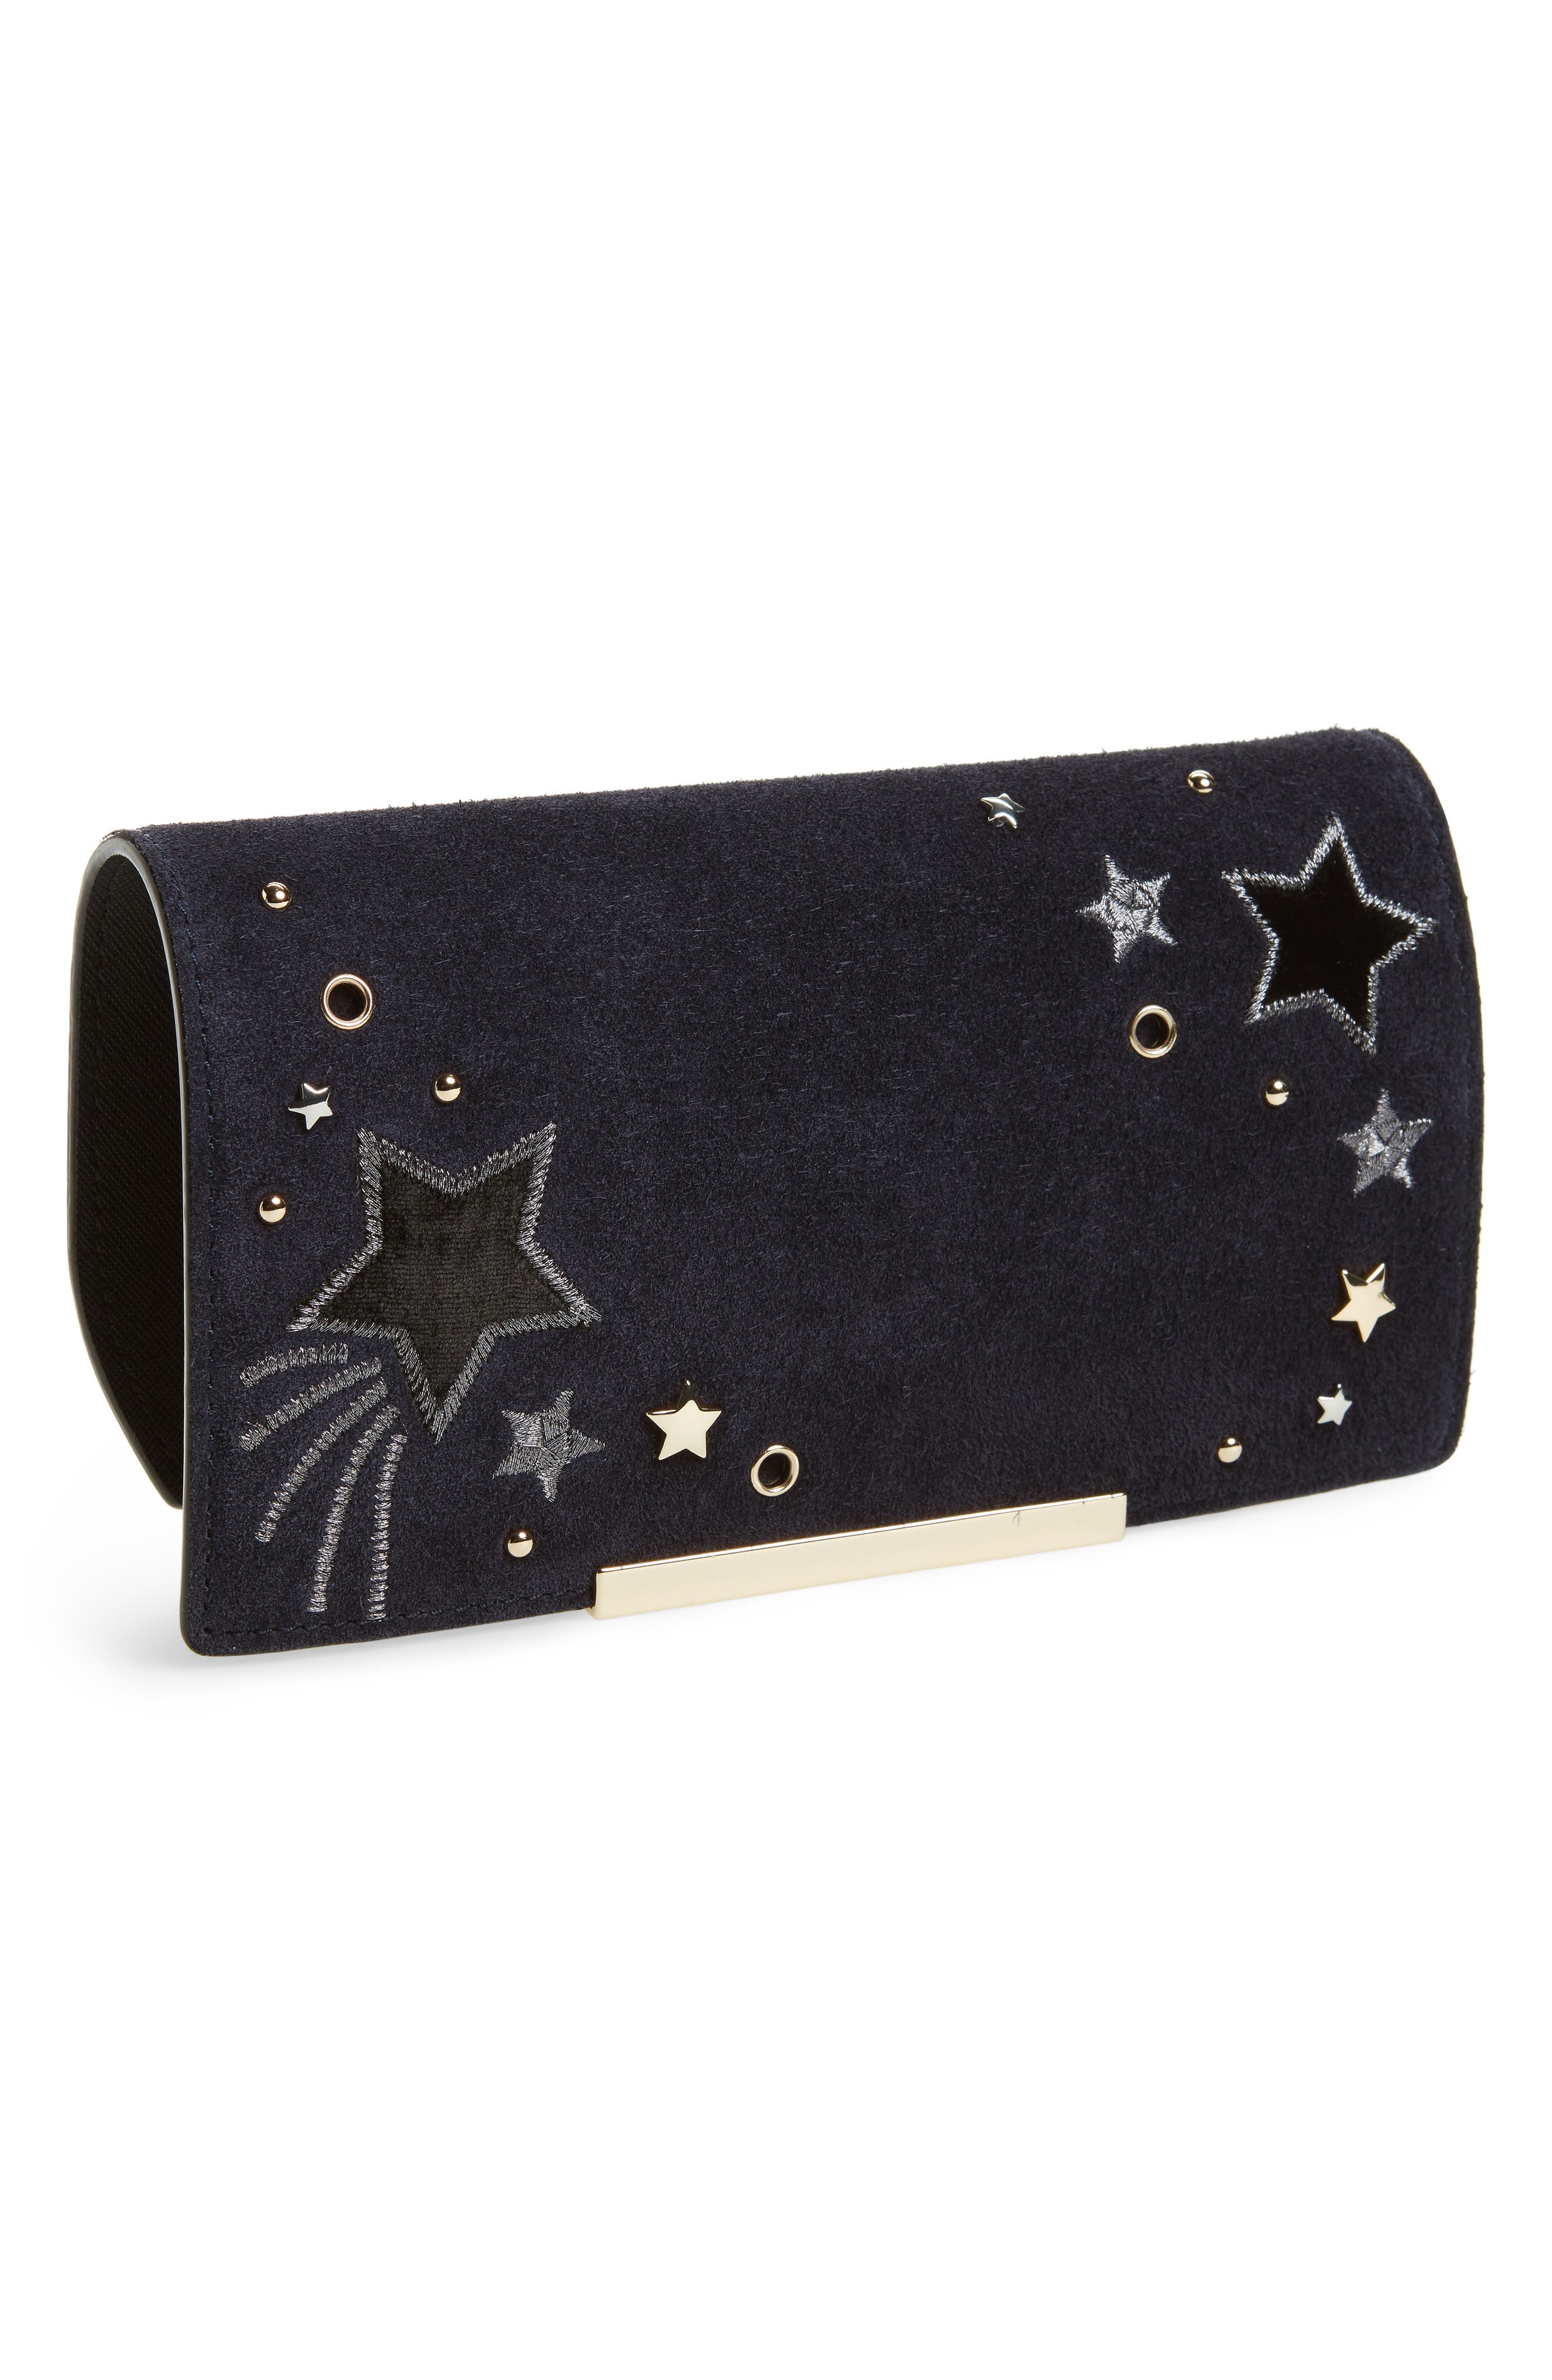 Main Image - kate spade new york make it mine star embellished snap-on accent flap